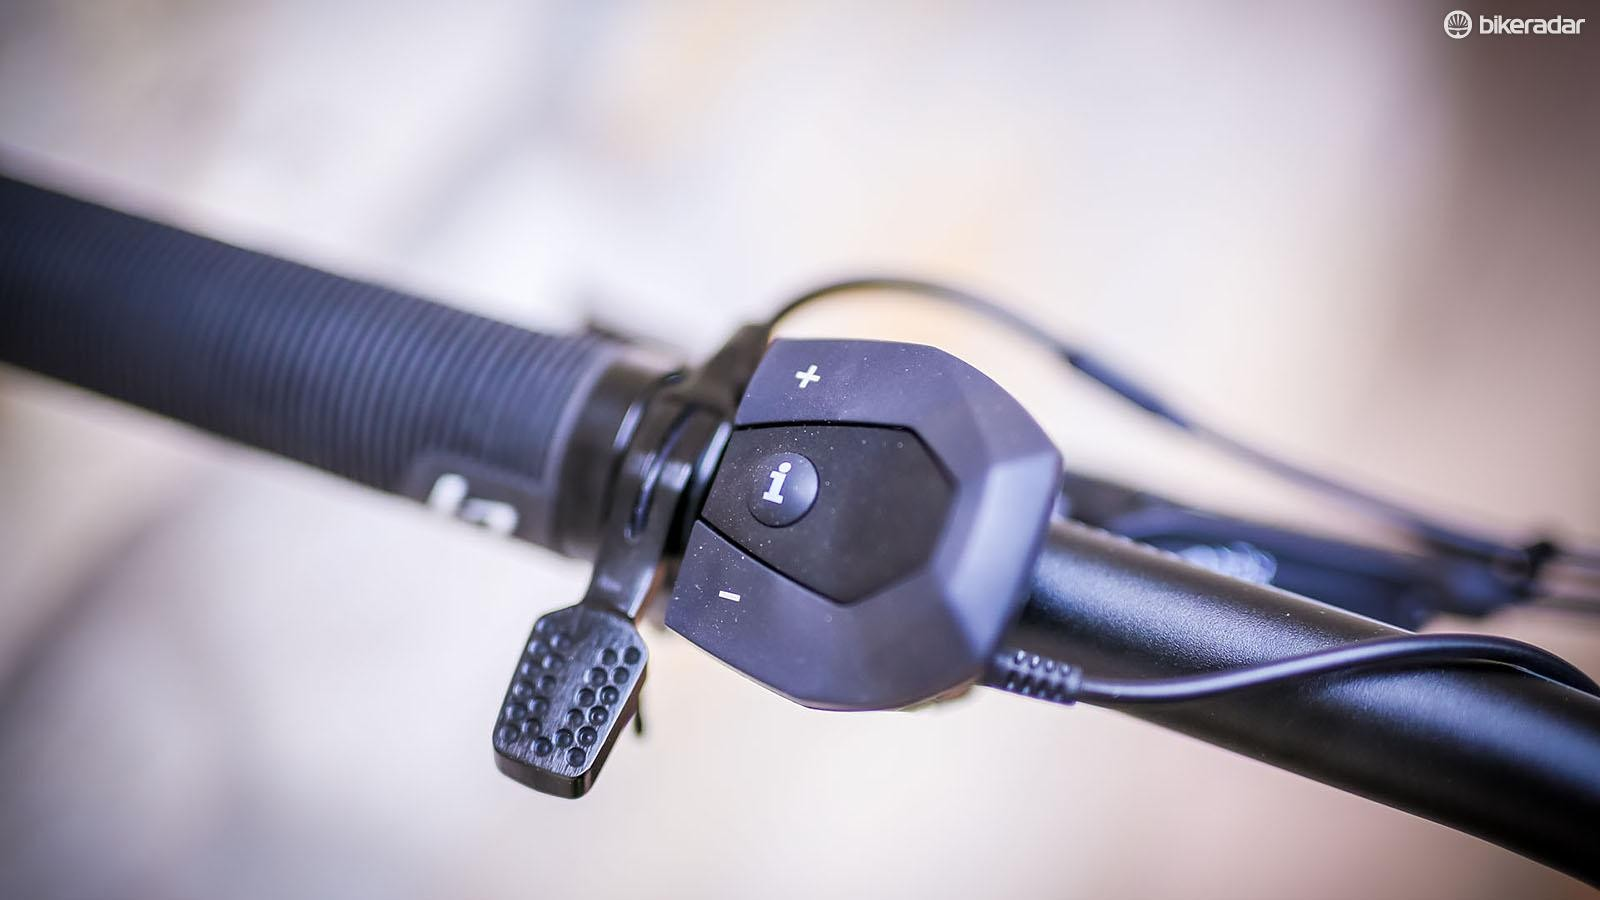 Toggling between power modes is easy thanks to the big Bosch bar-mounted remote, which is nestled nicely next to Lapierre's new dropper post remote